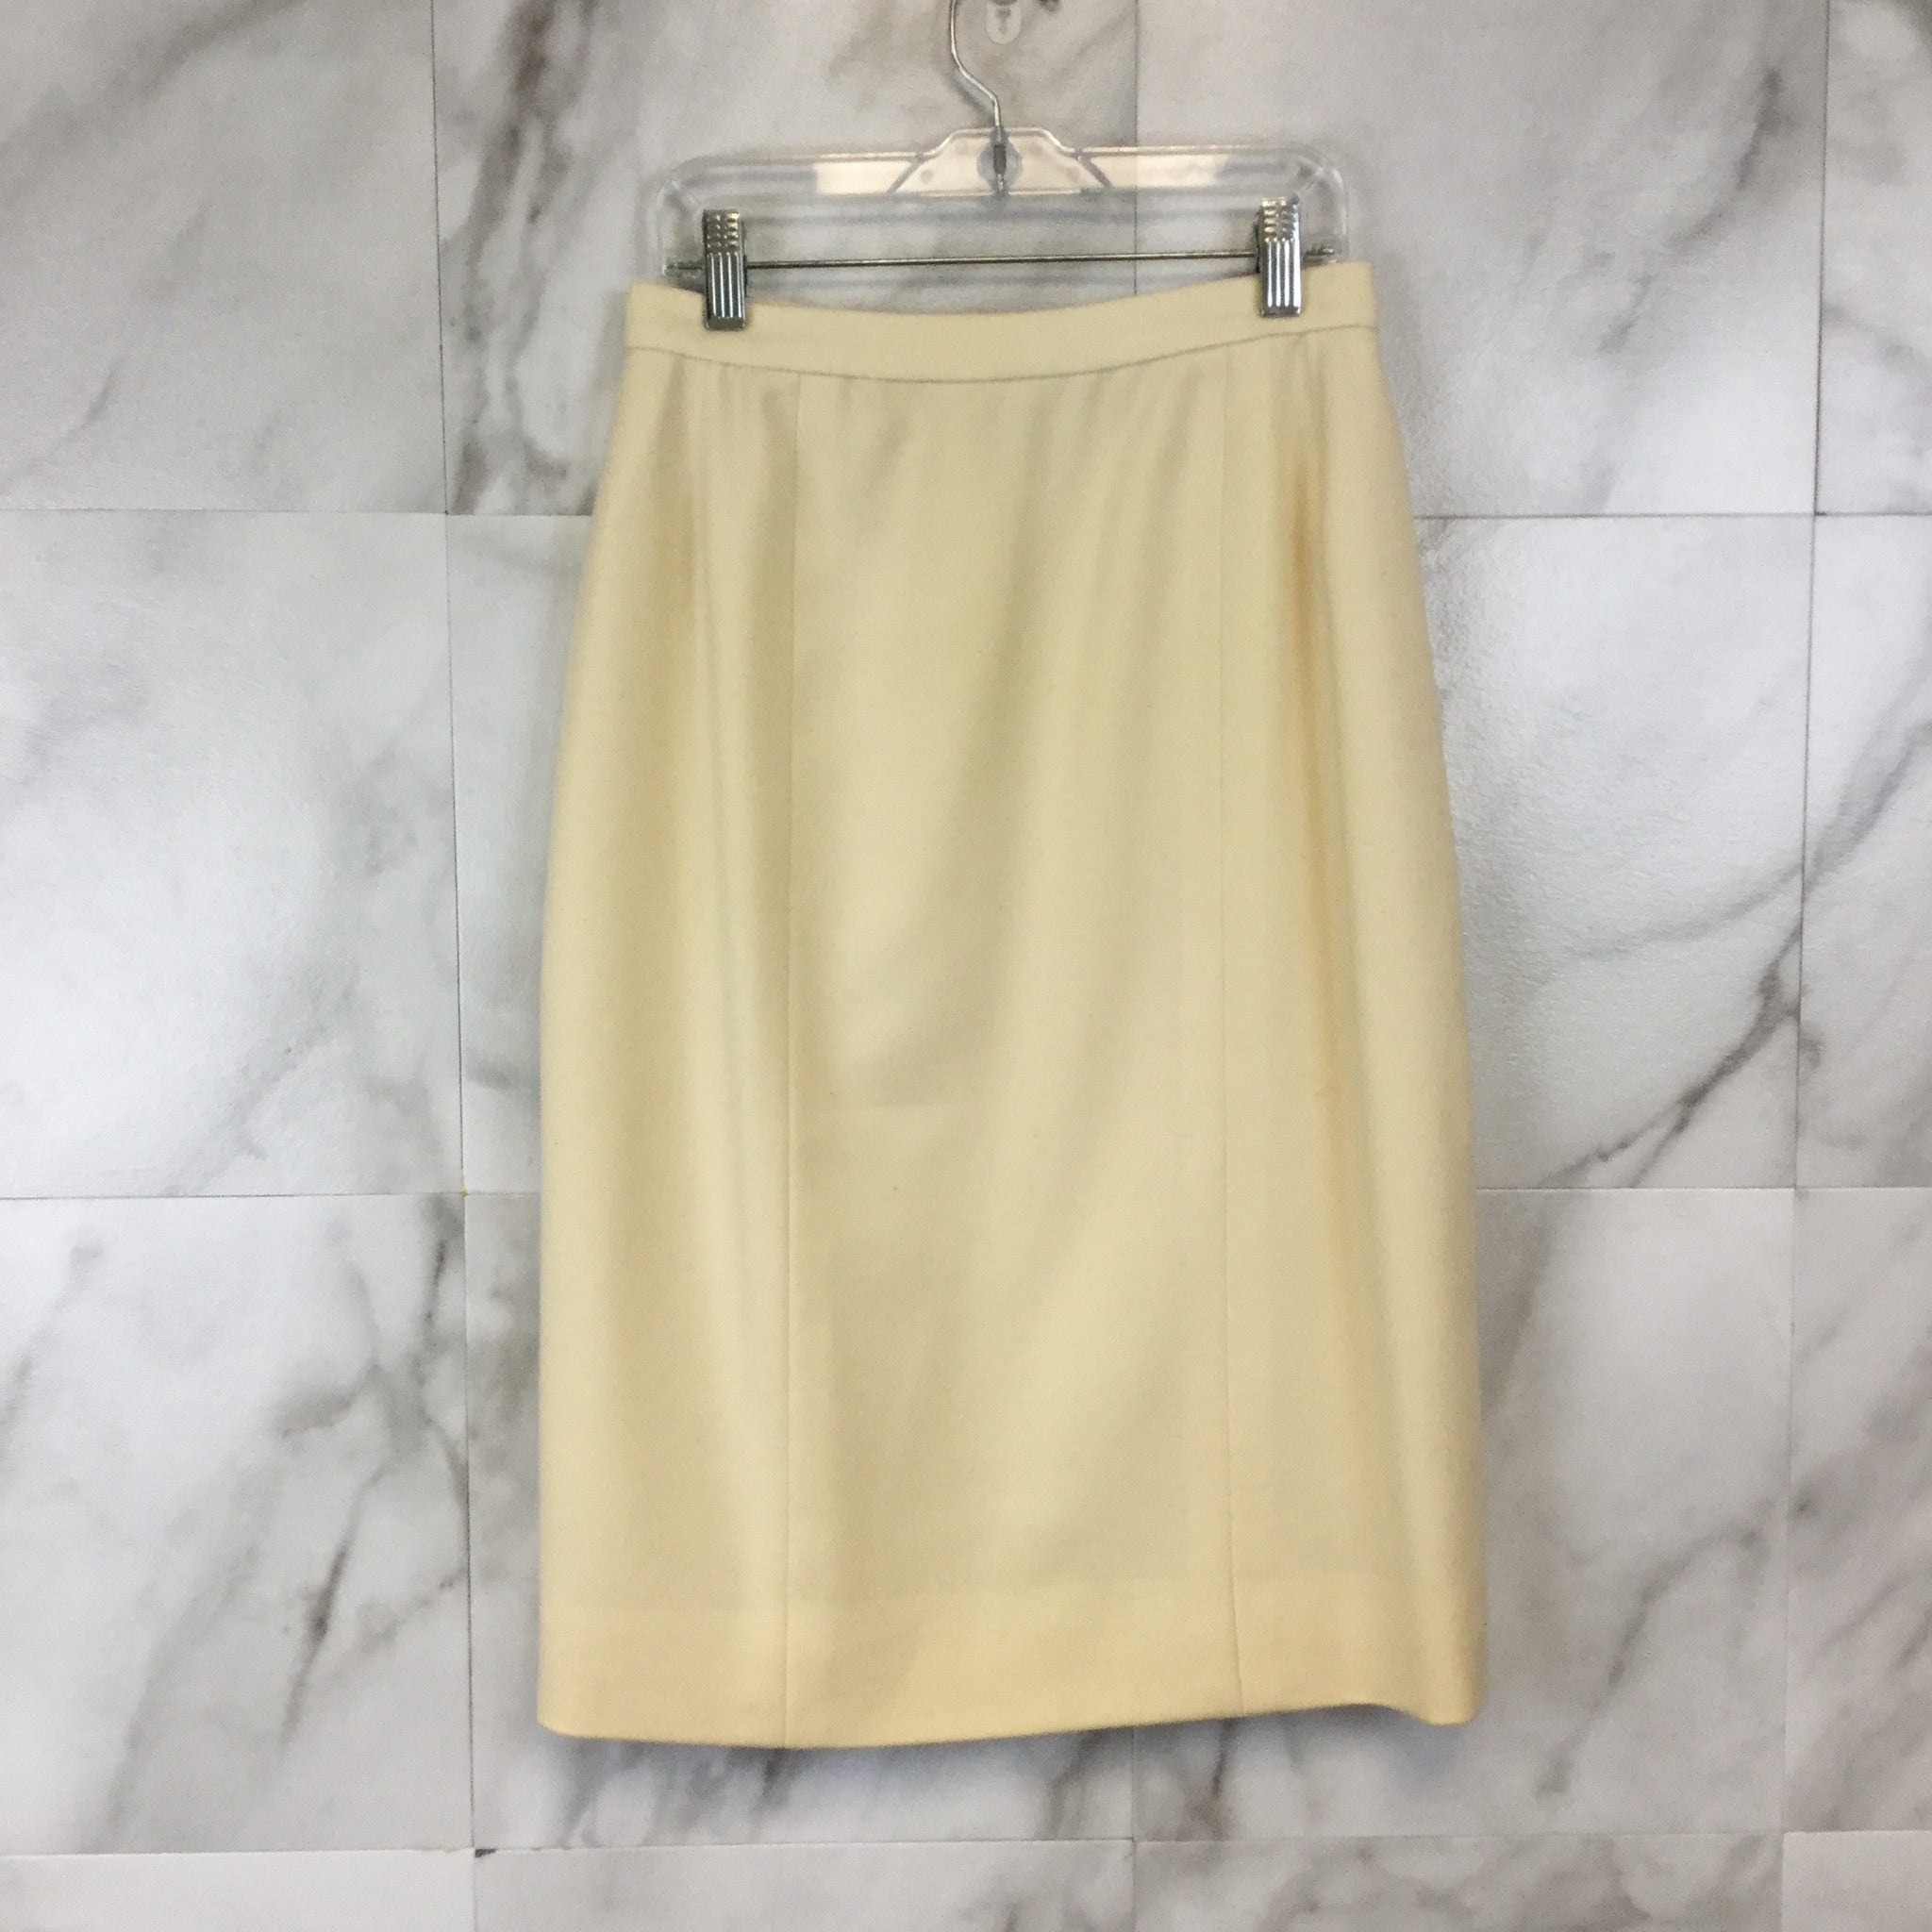 Chanel Vintage Pencil Skirt - size 2